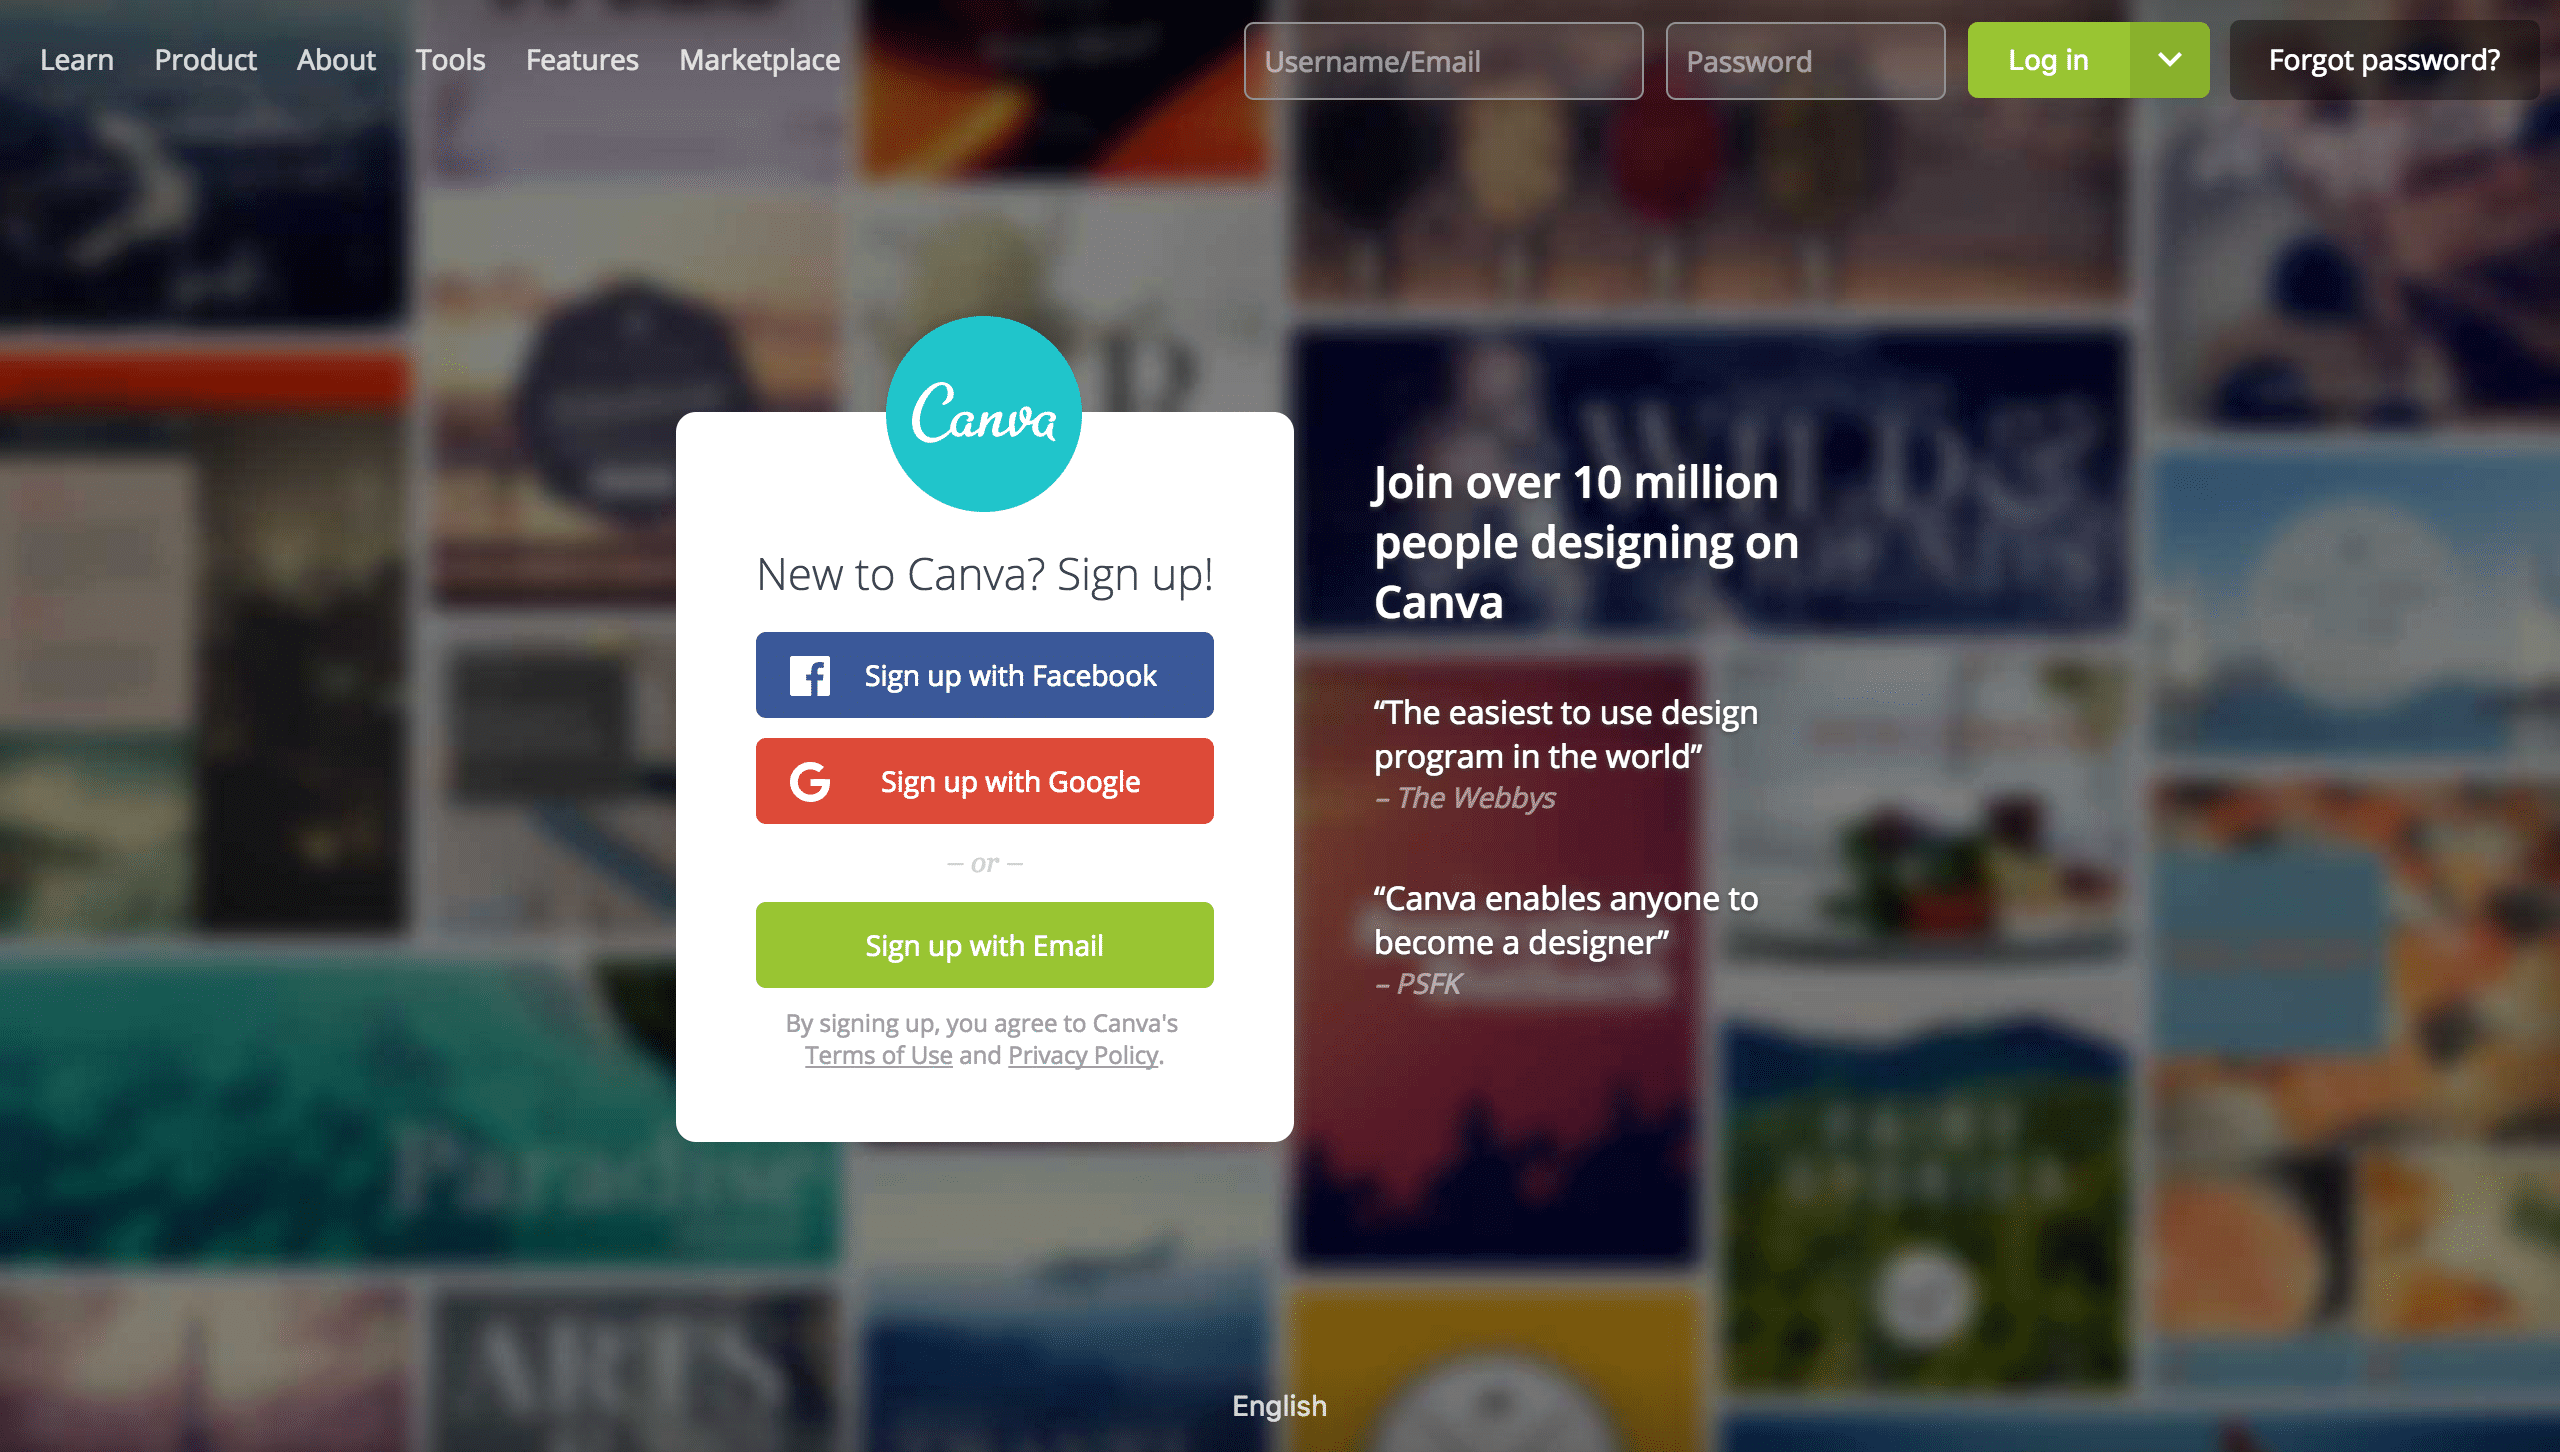 canva sign up form